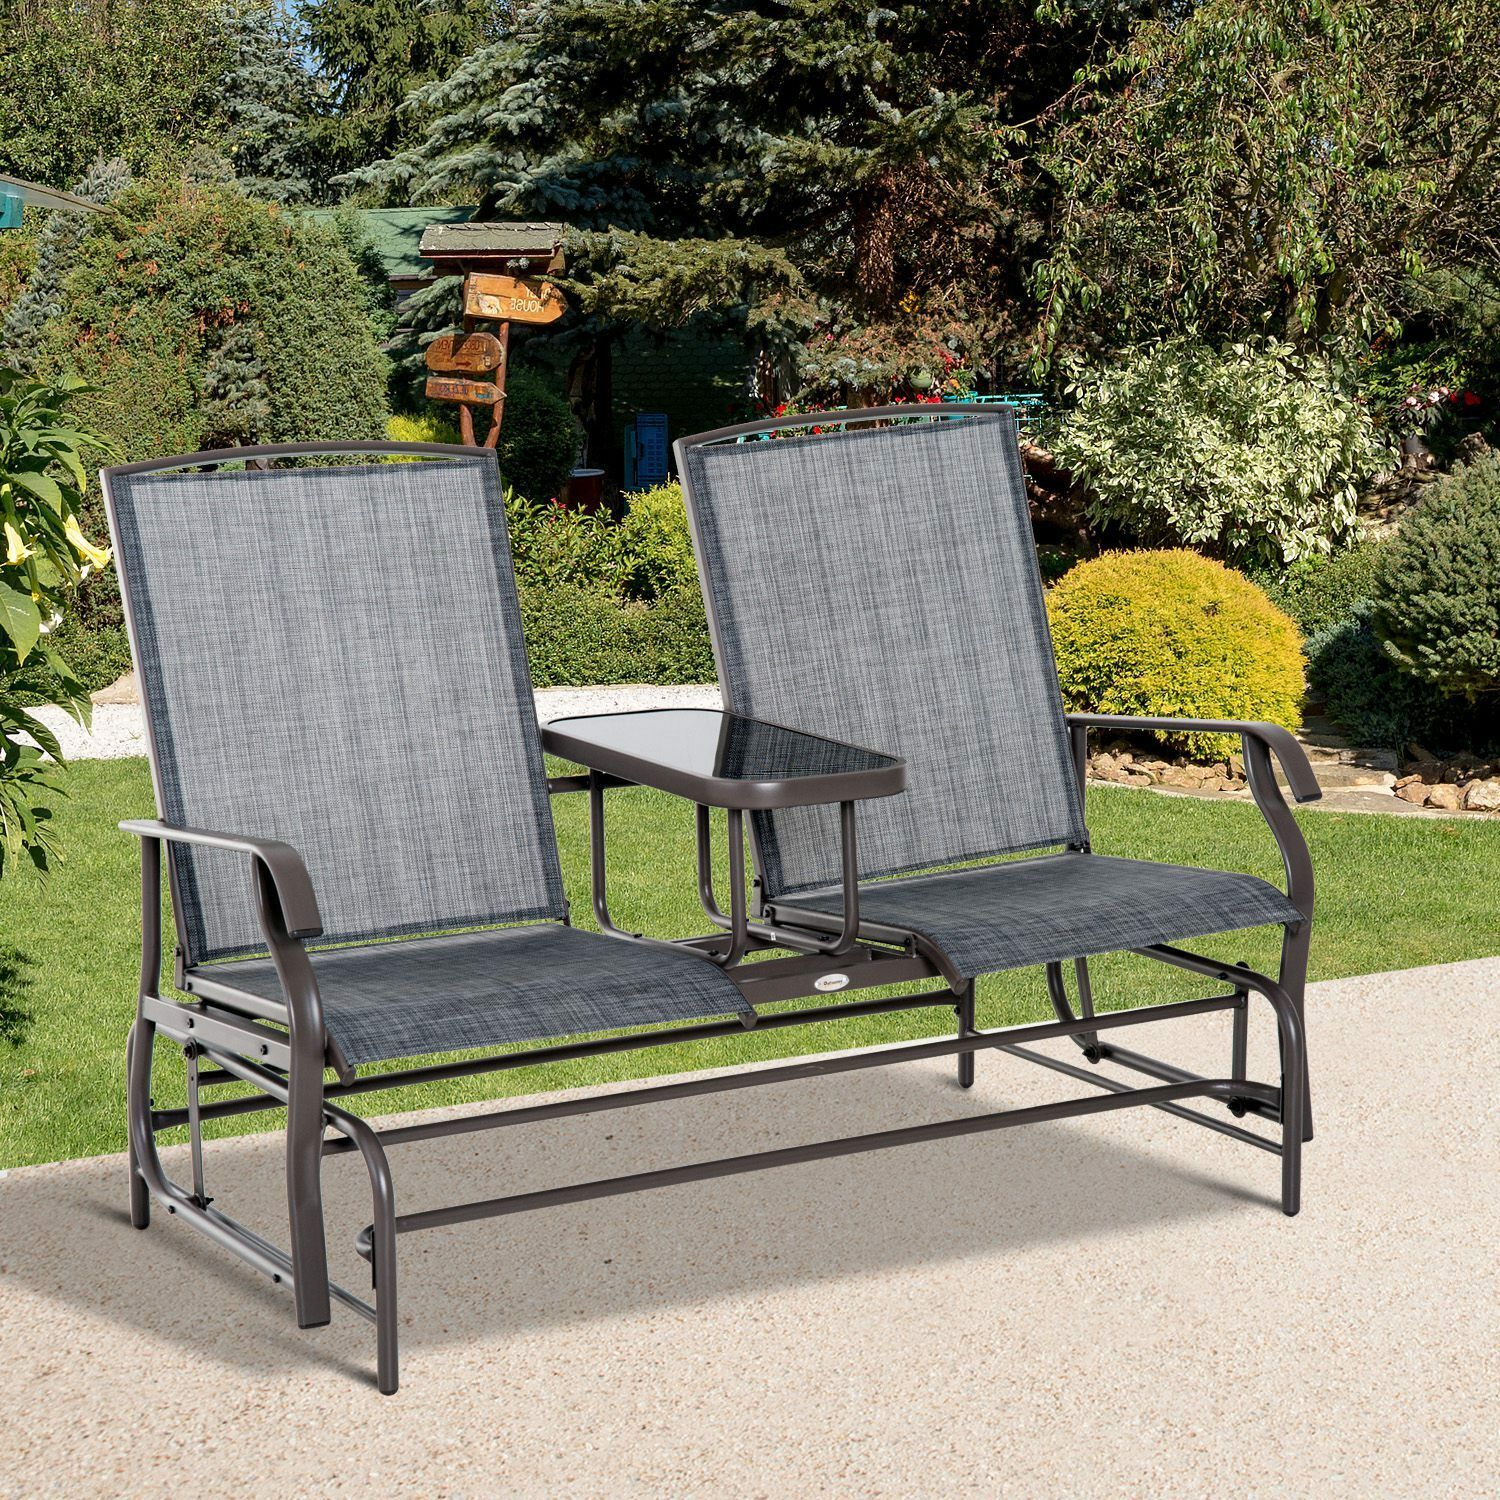 Outsunny 2 Seater Patio Glider Rocking Chair Metal Swing Bench Furniture  Table Intended For Outdoor Patio Swing Glider Bench Chairs (View 10 of 25)